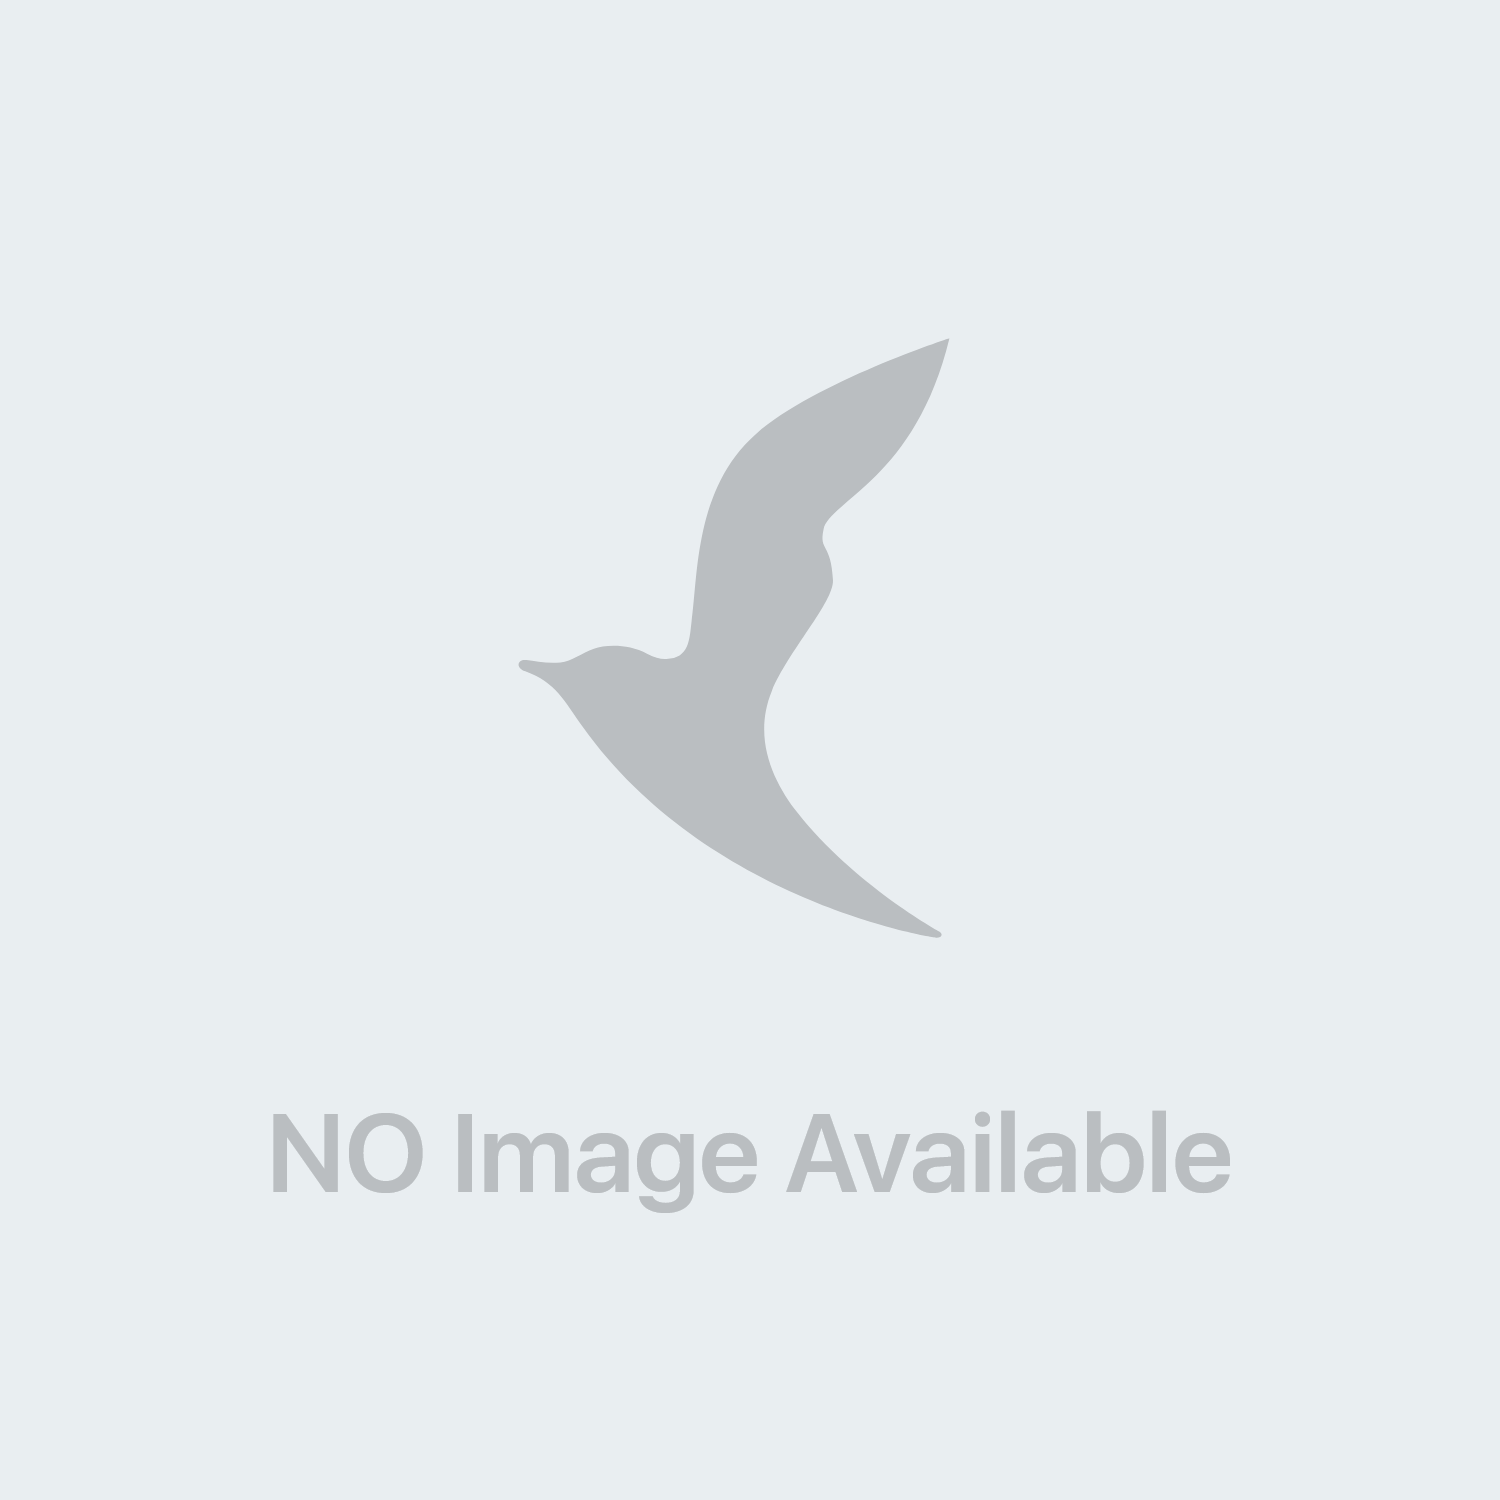 Acquasal Spray Nasale Soluzione Isotonica 100 ml